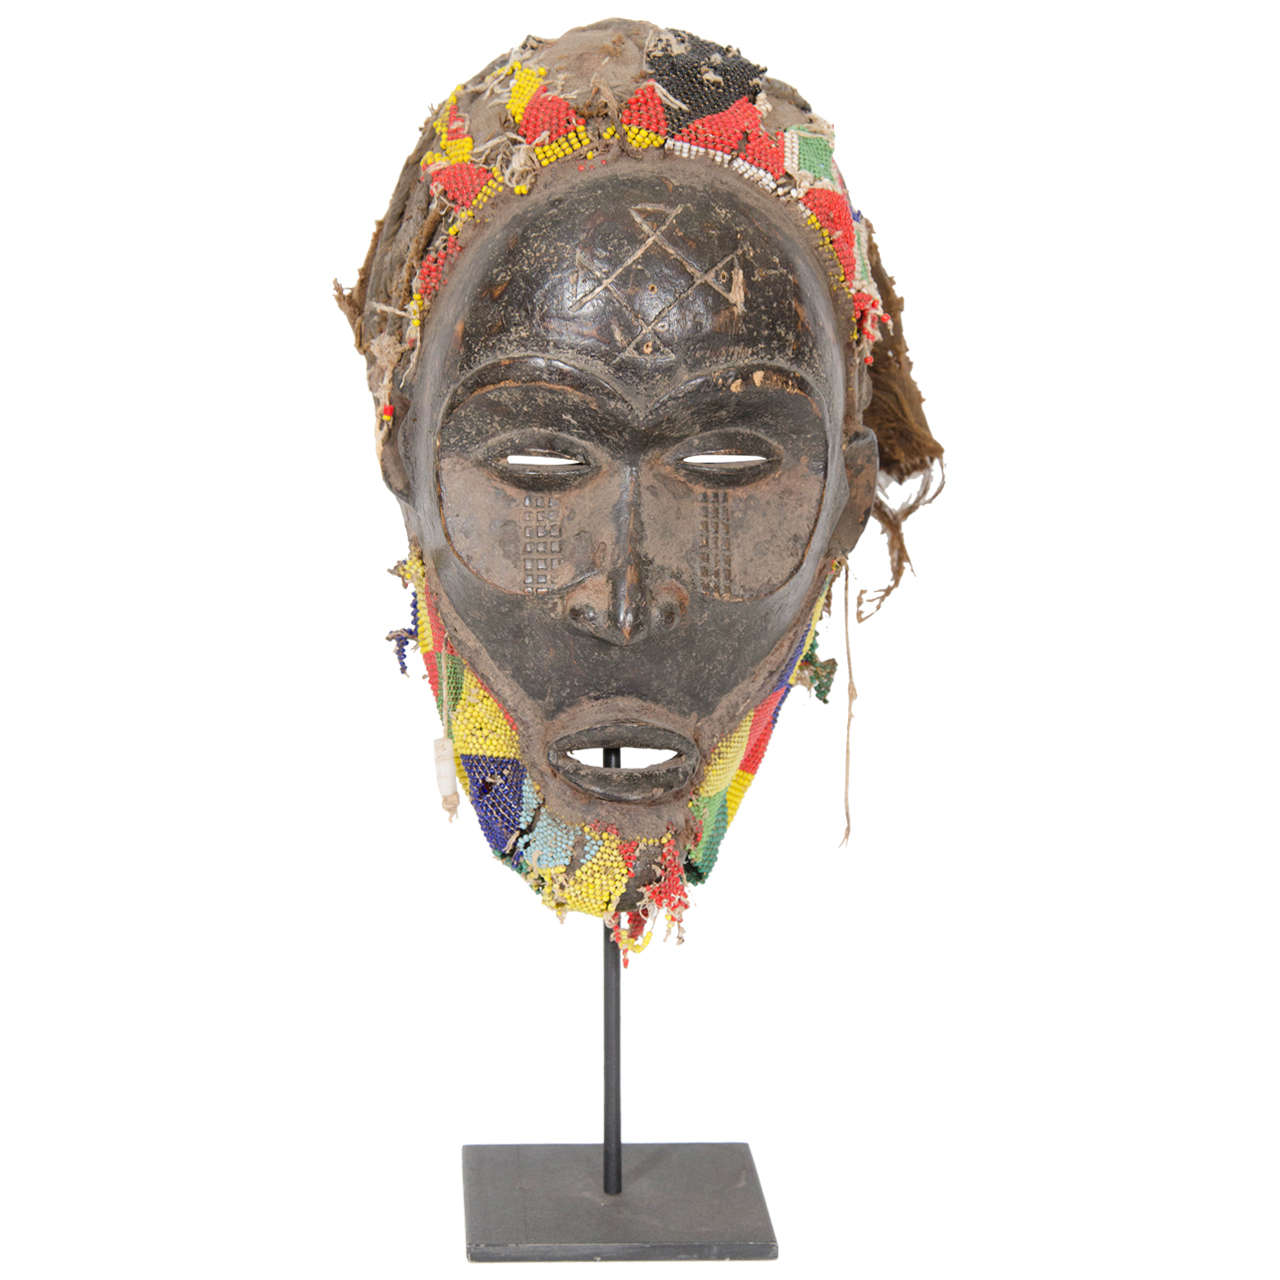 Beaded Wooden Mask in the Style of Chokwe Tribal Ritual